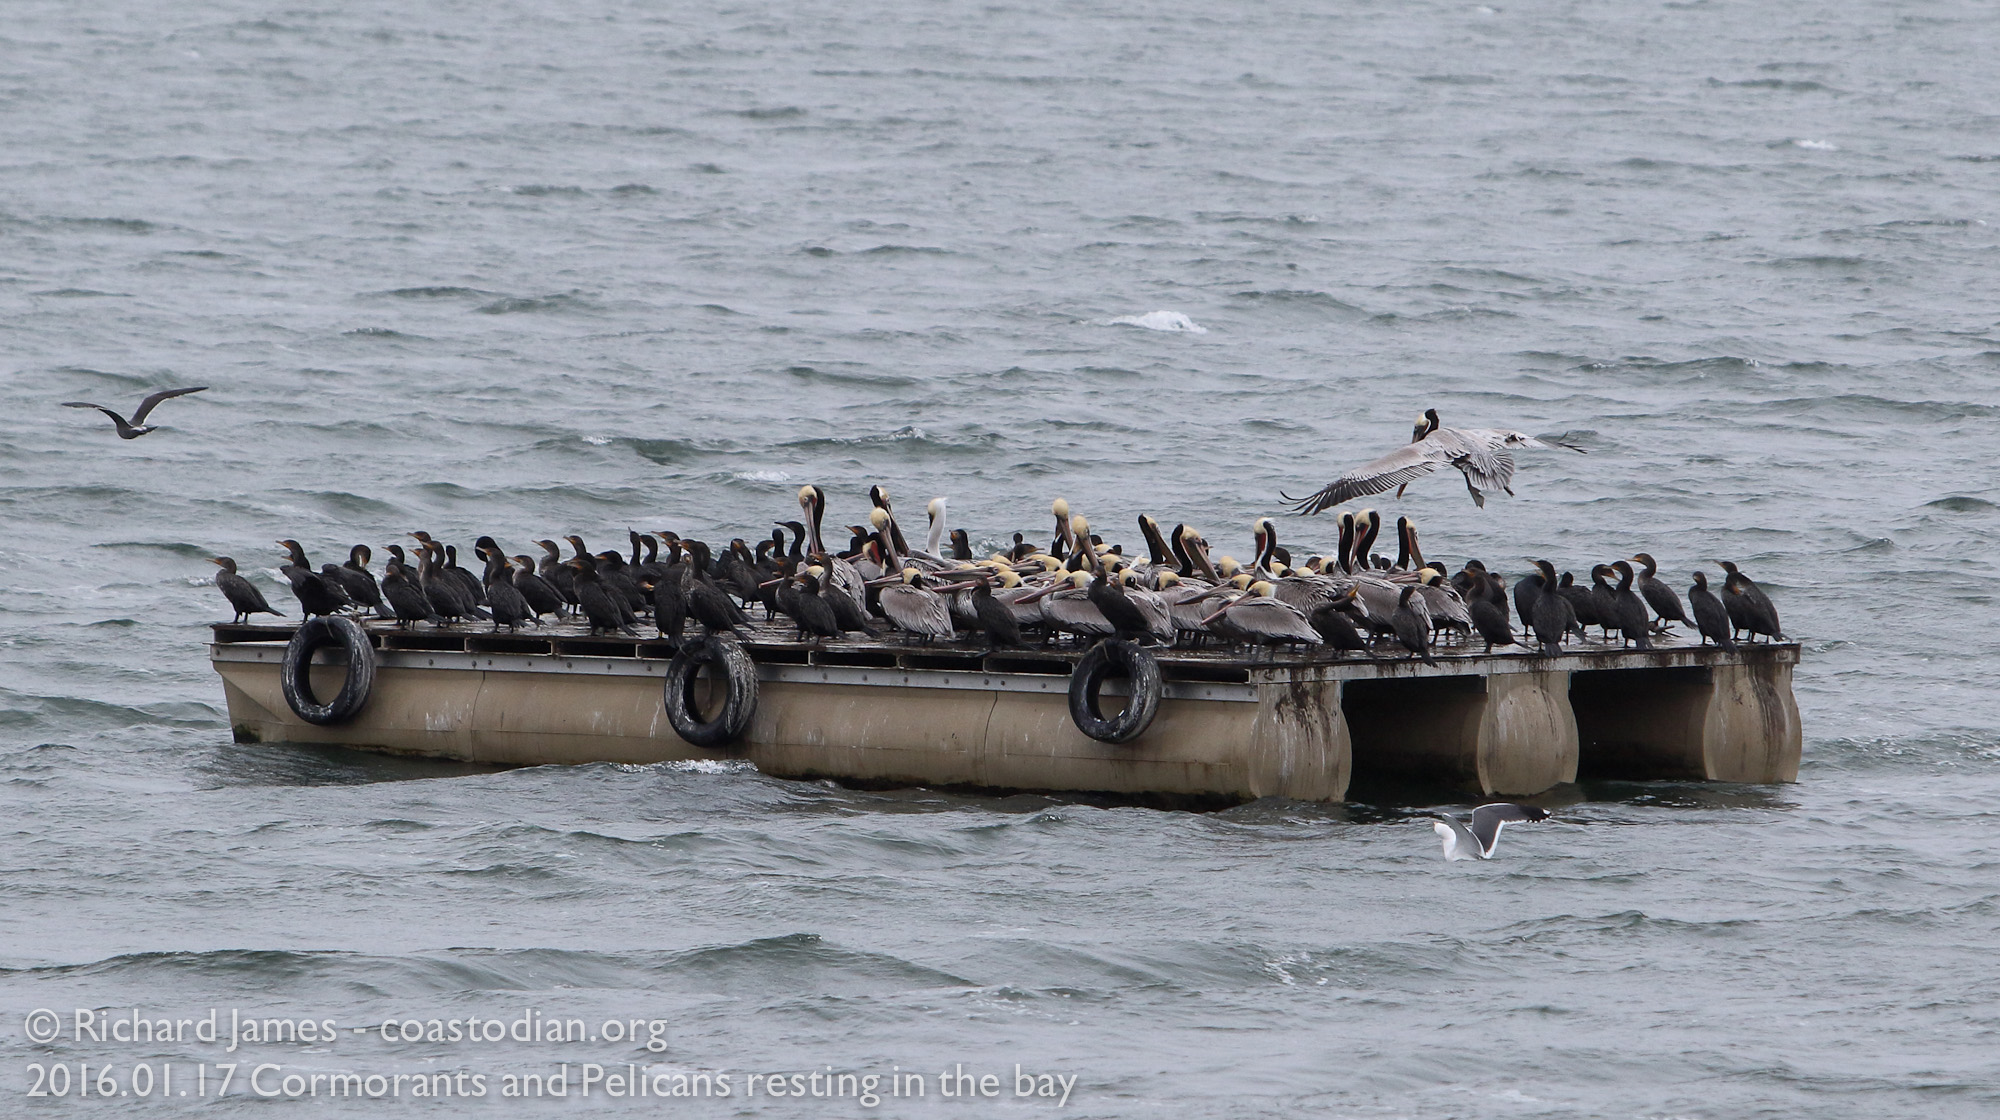 ©Richard James - coastodian.org Cormorants and Pelicans resting, keeping warm